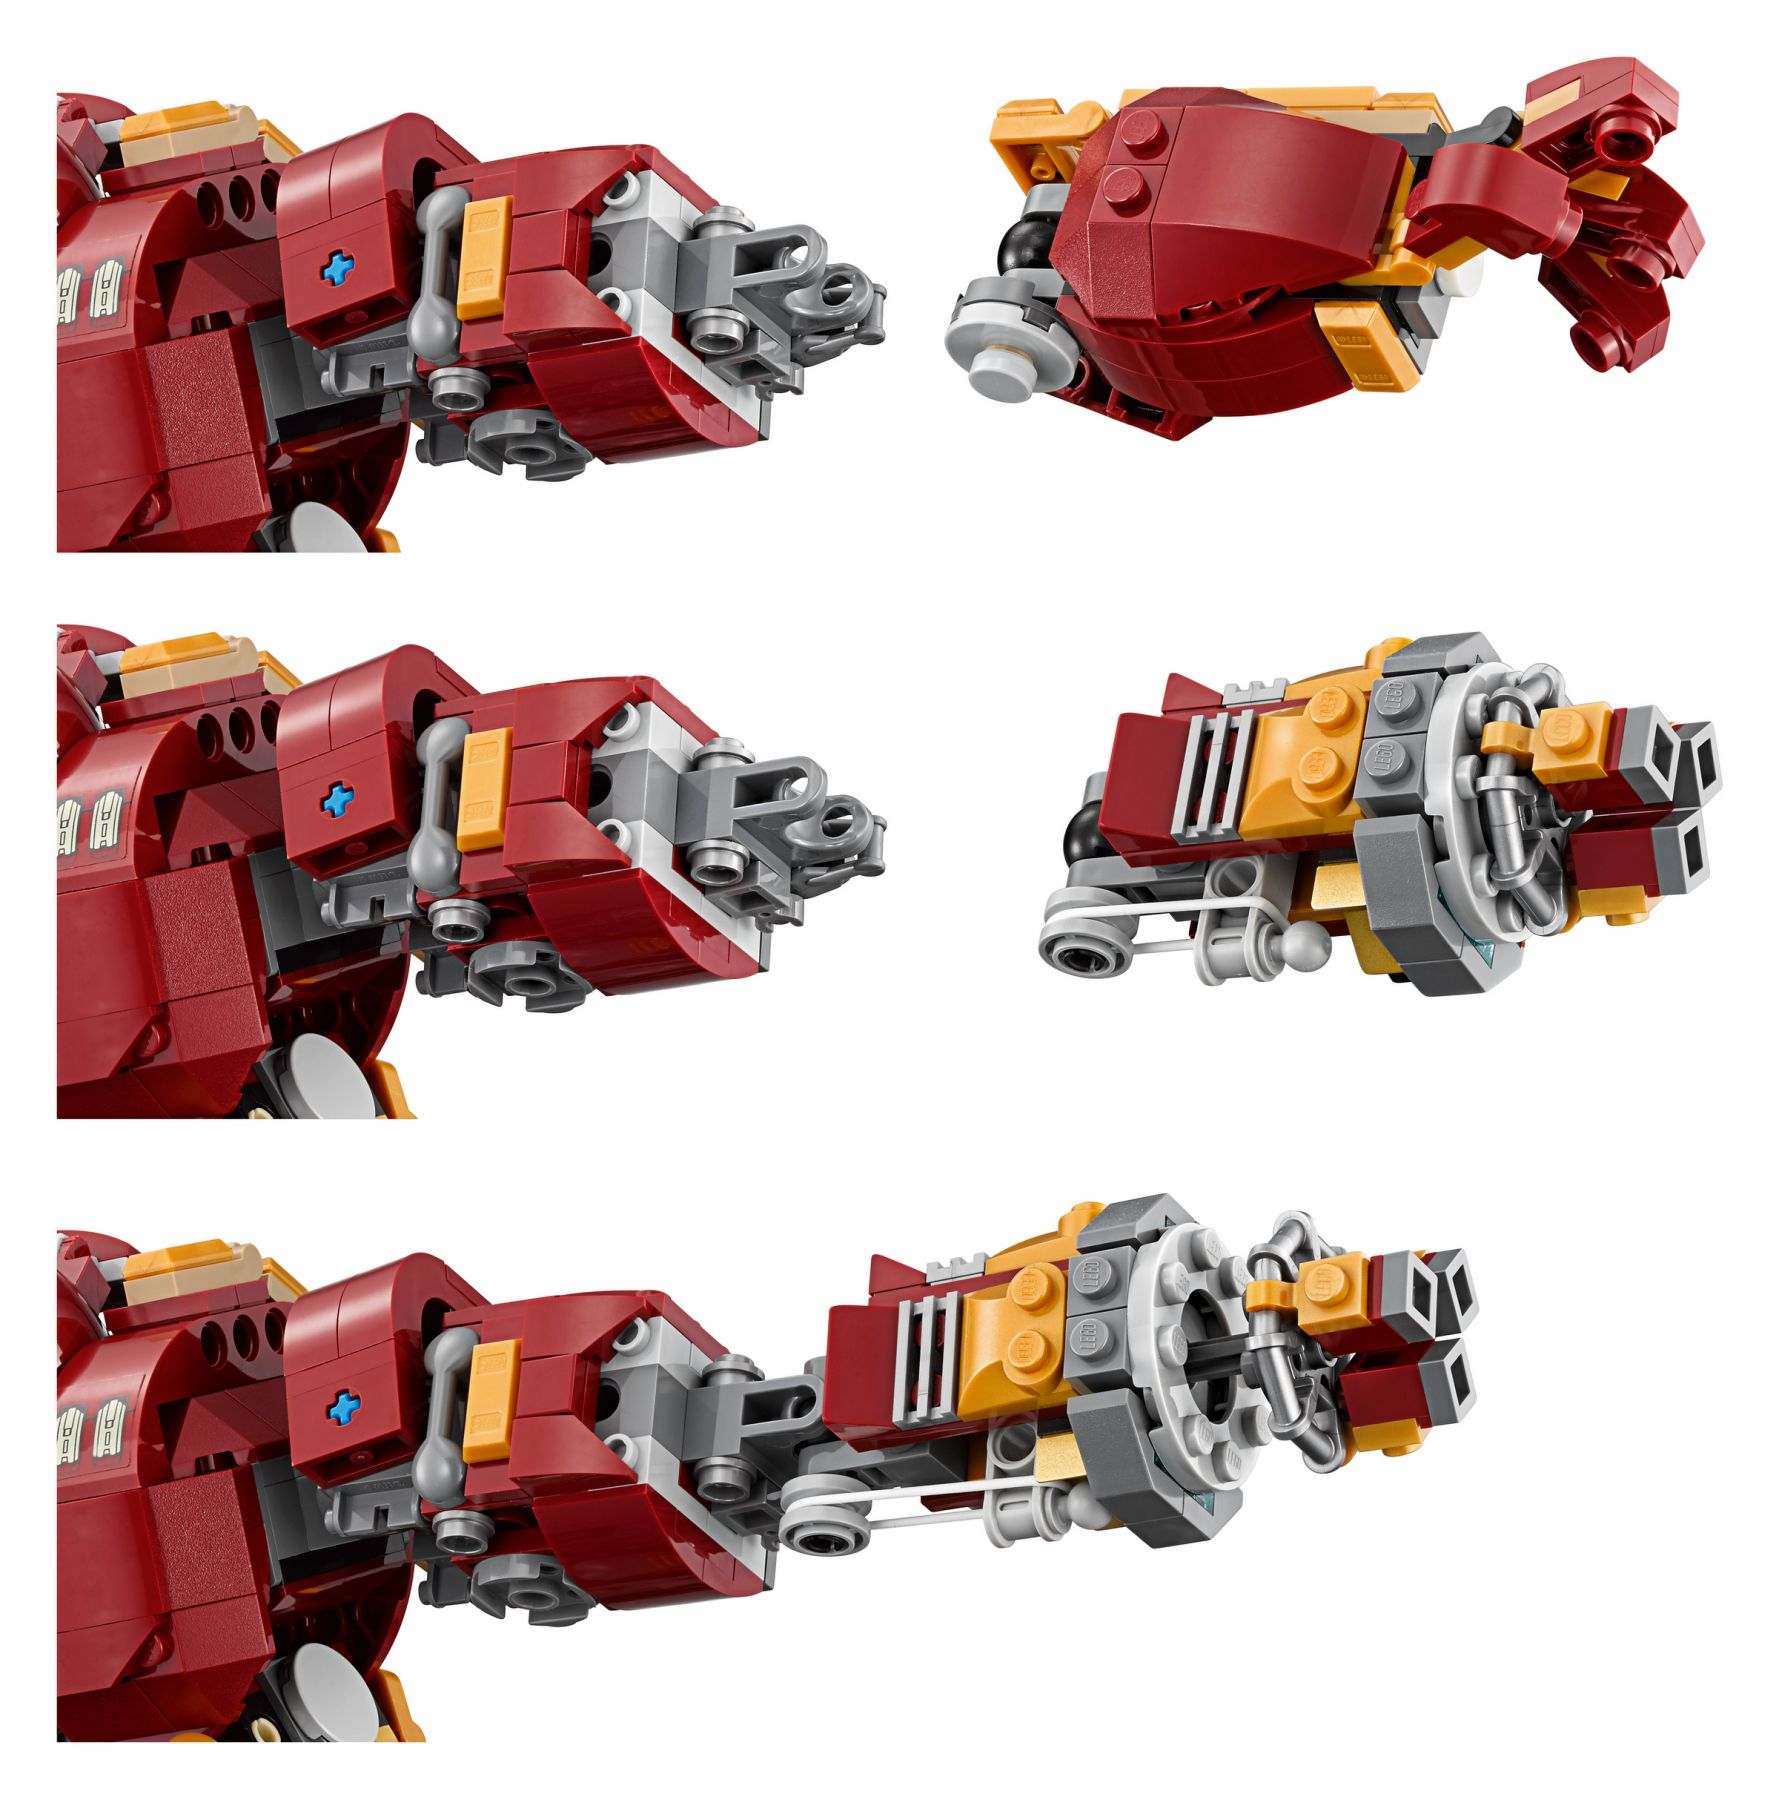 LEGO Super Heroes 76105 Marvel Avengers: Infinity War - The Hulkbuster: Ultron Edition LEGO_76105_alt7.jpg